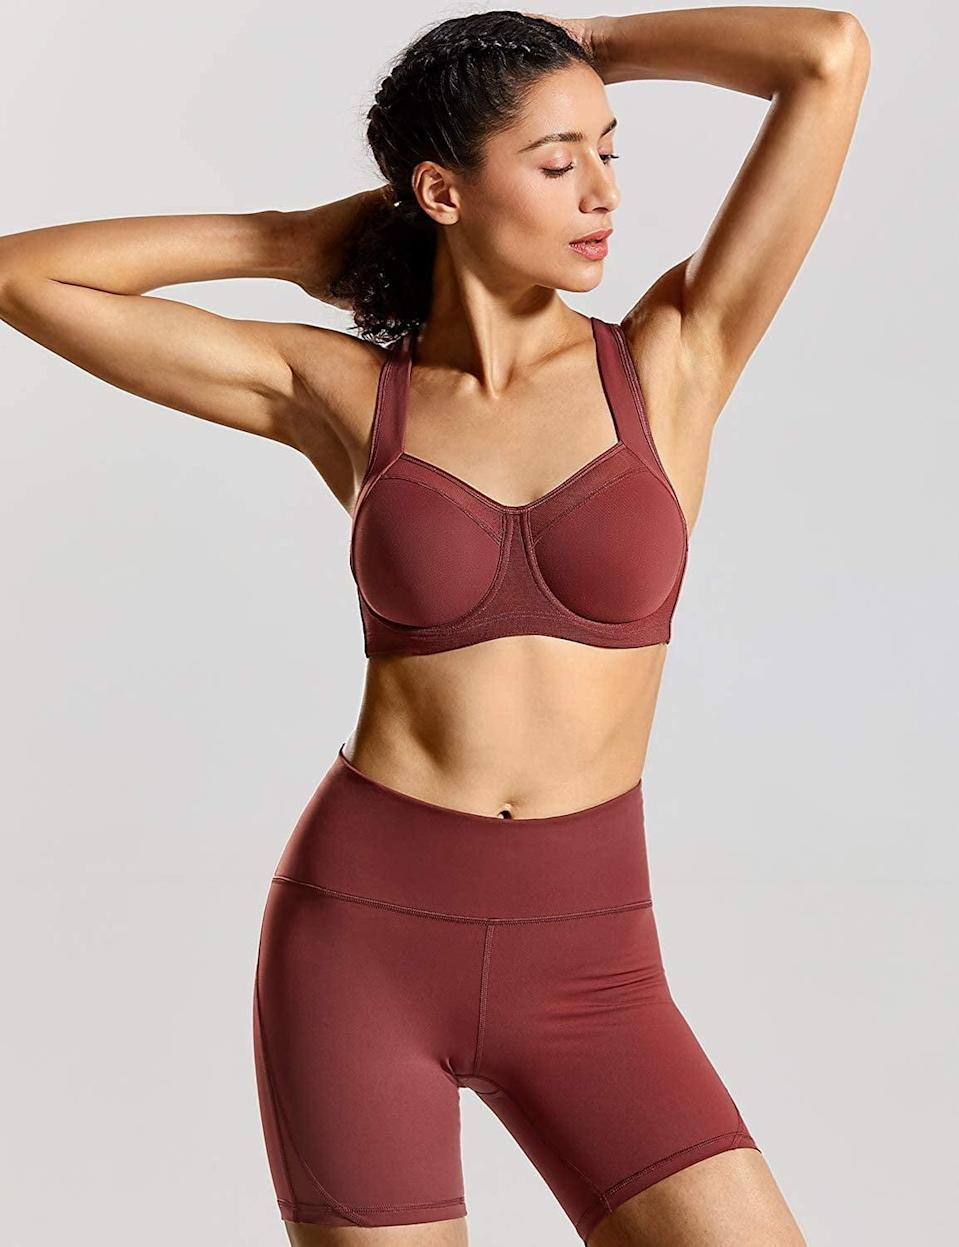 <p>The wide, smooth band at the bottom of the <span>Syrokan Women's High-Impact Powerback Support Underwire Sports Bra</span> ($26) makes it extra supportive and comfortable. The breathable mesh panels will keep you cool during your workout. </p>